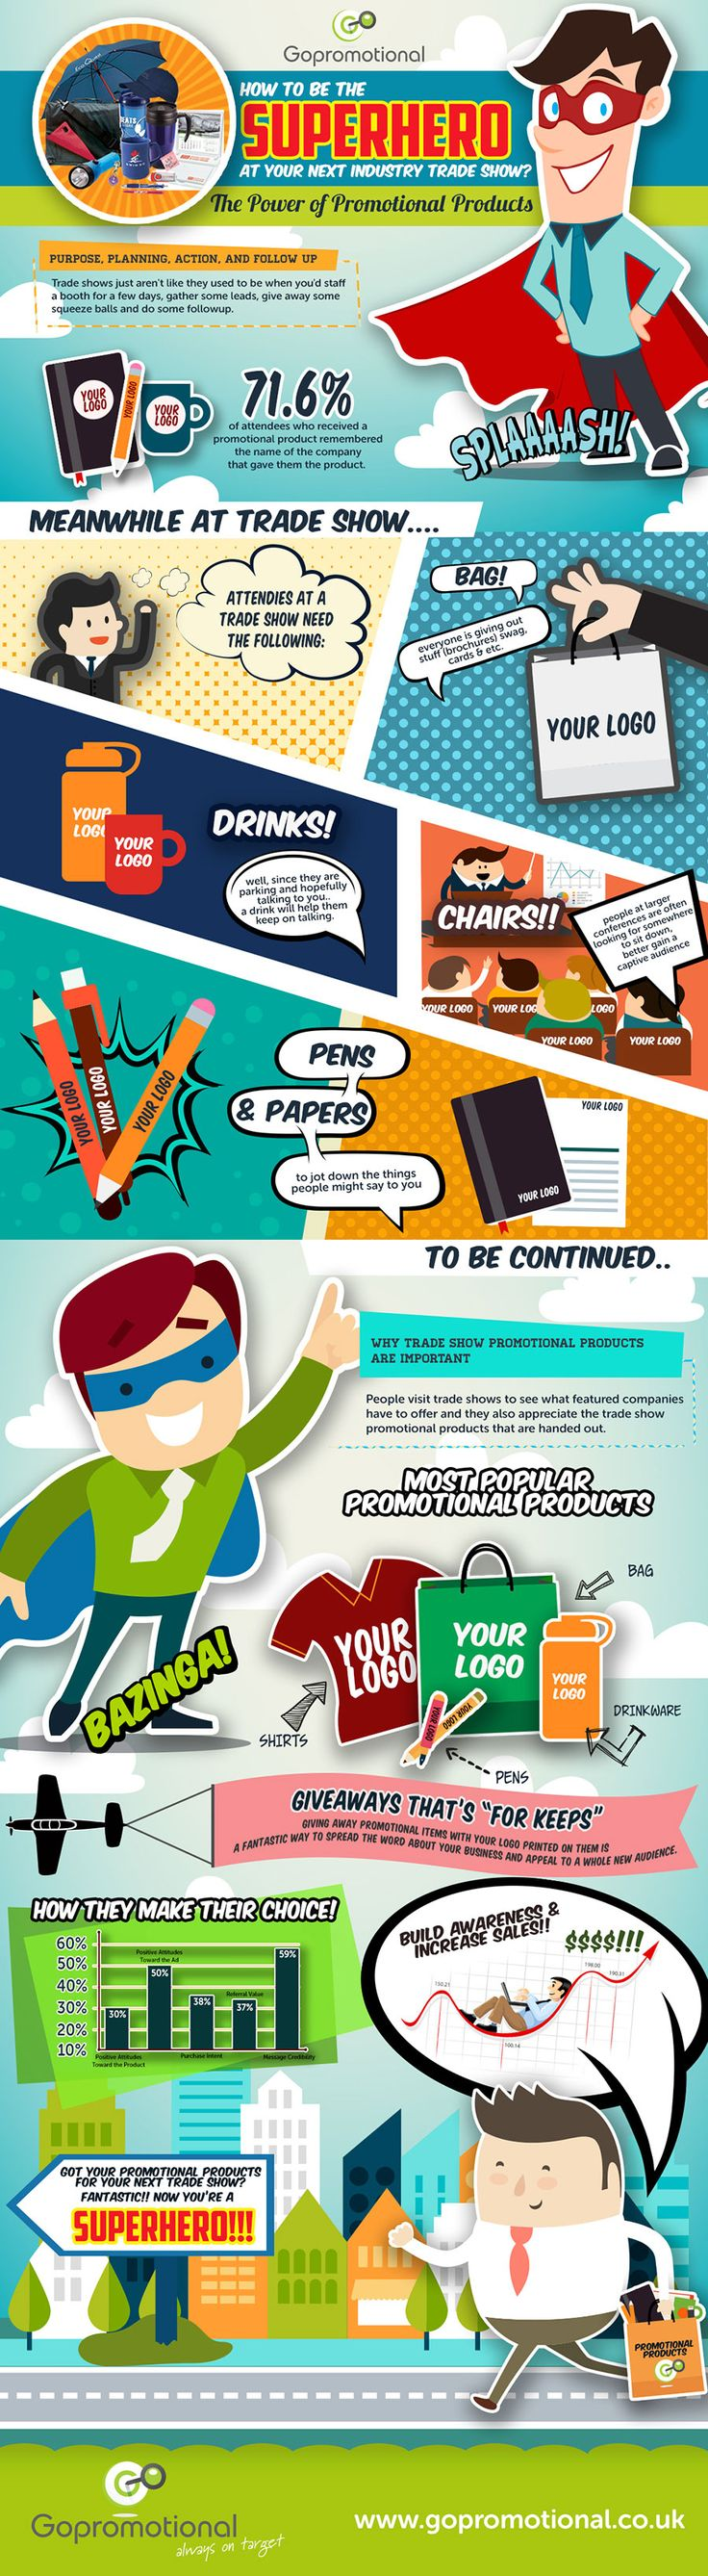 Cute #infographic with tips on using promotional products at trade shows (I don't agree with all of the suggestions ... pens, for example, are too been-there-done-that.)